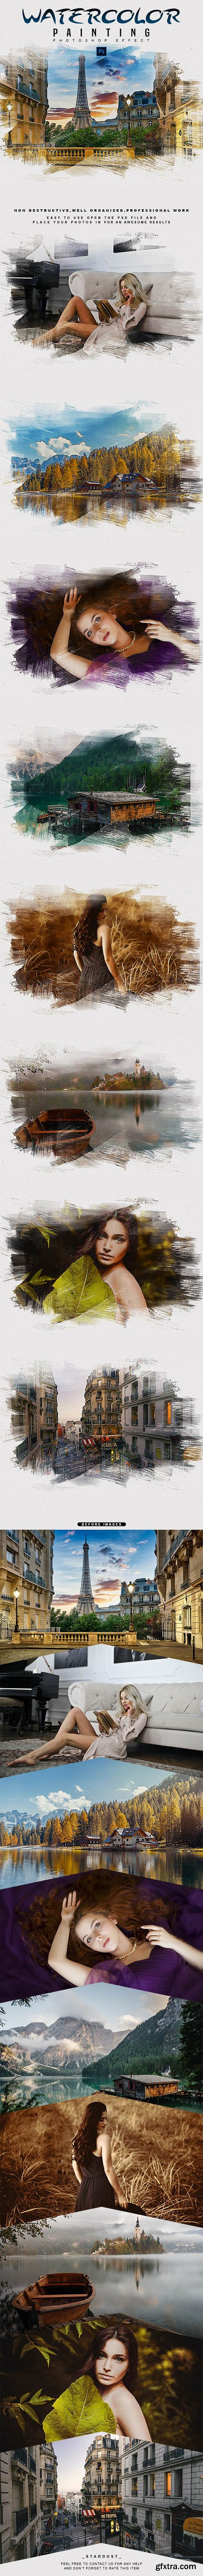 GraphicRiver - Watercolor Painting - Photoshop Effect 28936851